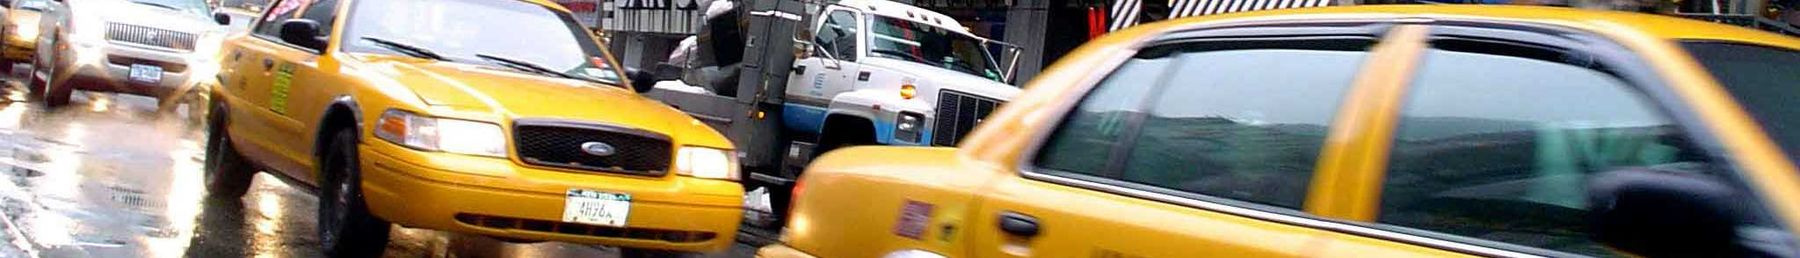 New York City's iconic yellow taxi cabs